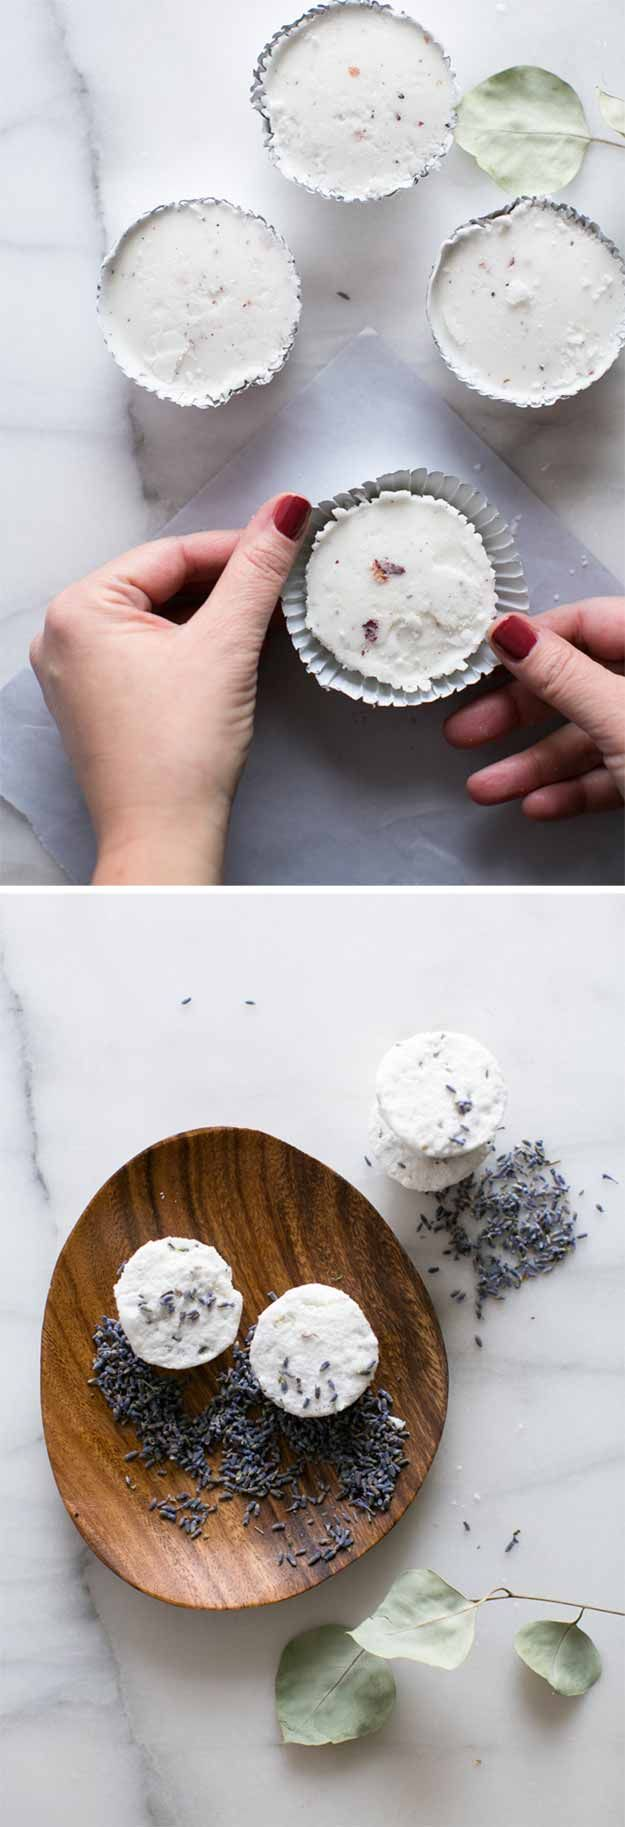 Best DIY Bath Bombs For Spa Day at Home - DIY Aromatherapy Bath Bombs - Easy DIY Bath Bomb Recipes For You To Make At Home. These Are Made With Easy, Natural Recipe Ideas And Are Great For Sensitive Skin. Some Are Made Without Citric Acid And Without Epsom Salt So You Can Get That Scented And Lush Feel On Your Skin Without Irritation. Try Ones For Kids For A Fun Galaxy Bath Time. These Homemade Bath Bombs Are Relaxing And Can Be Made Organic Too. Try Them With Glitter Or Colorful Ingredients…